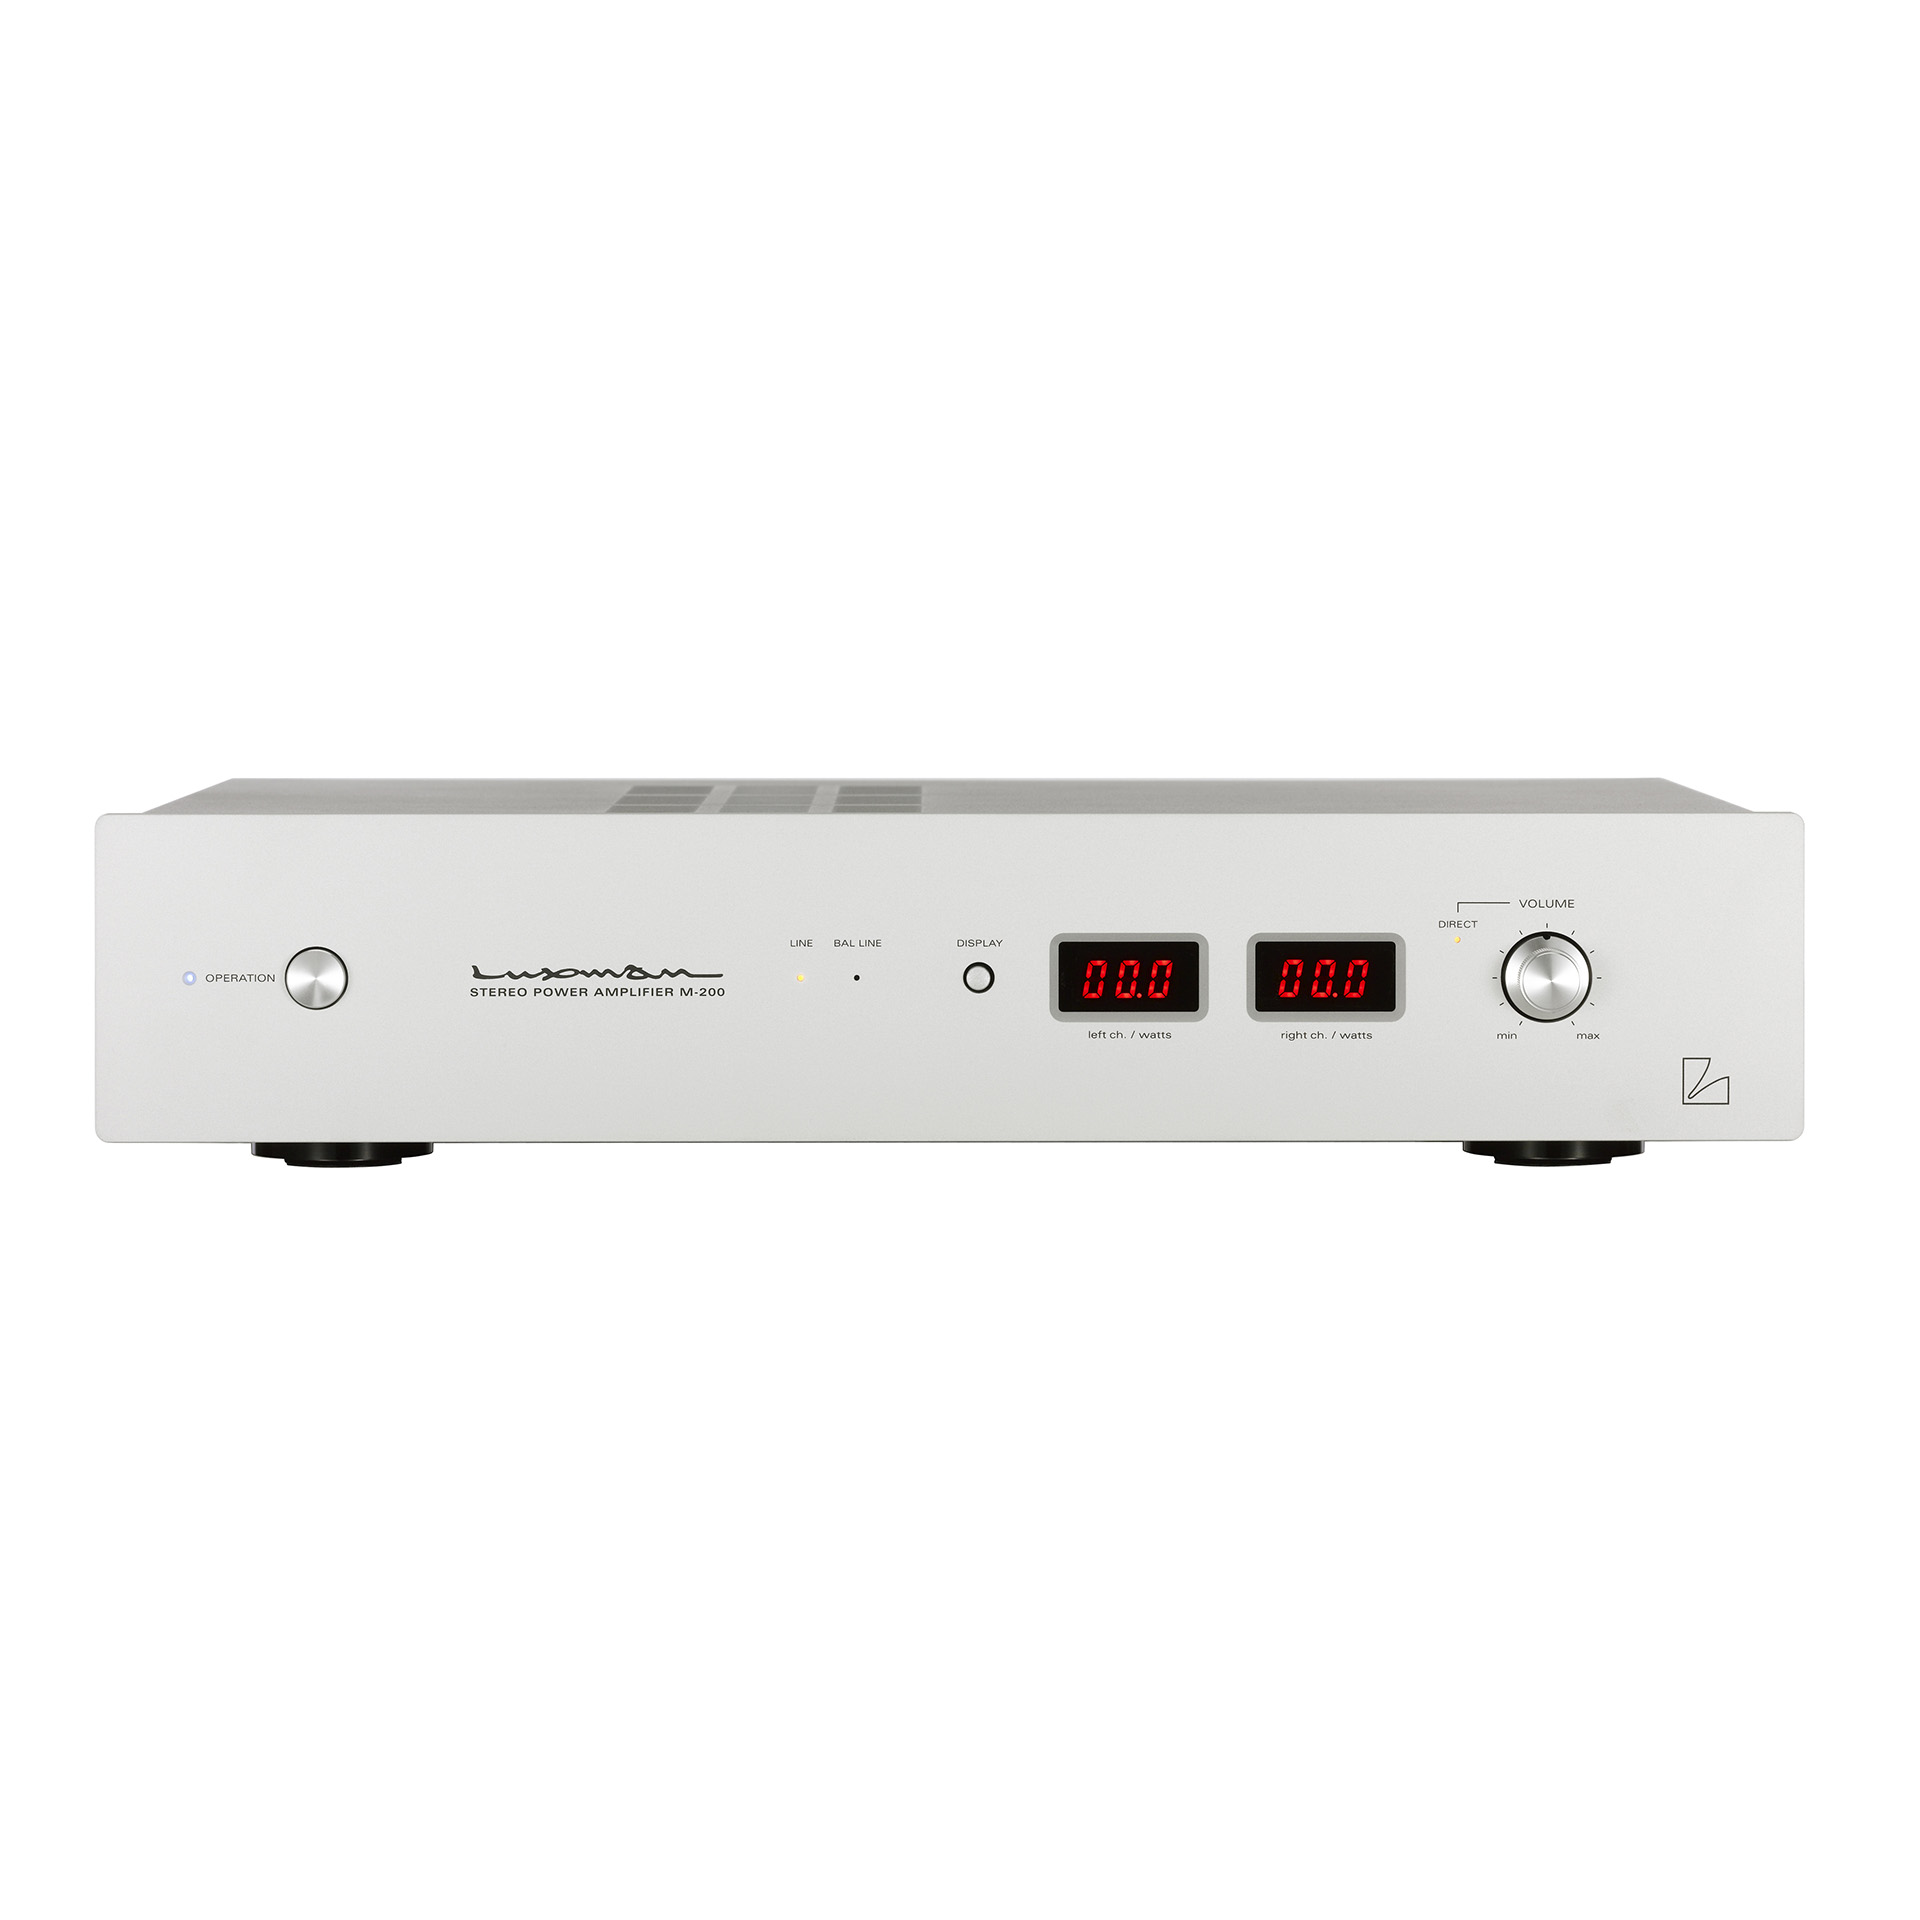 Luxman M-200u - Chattelin Audio Systems